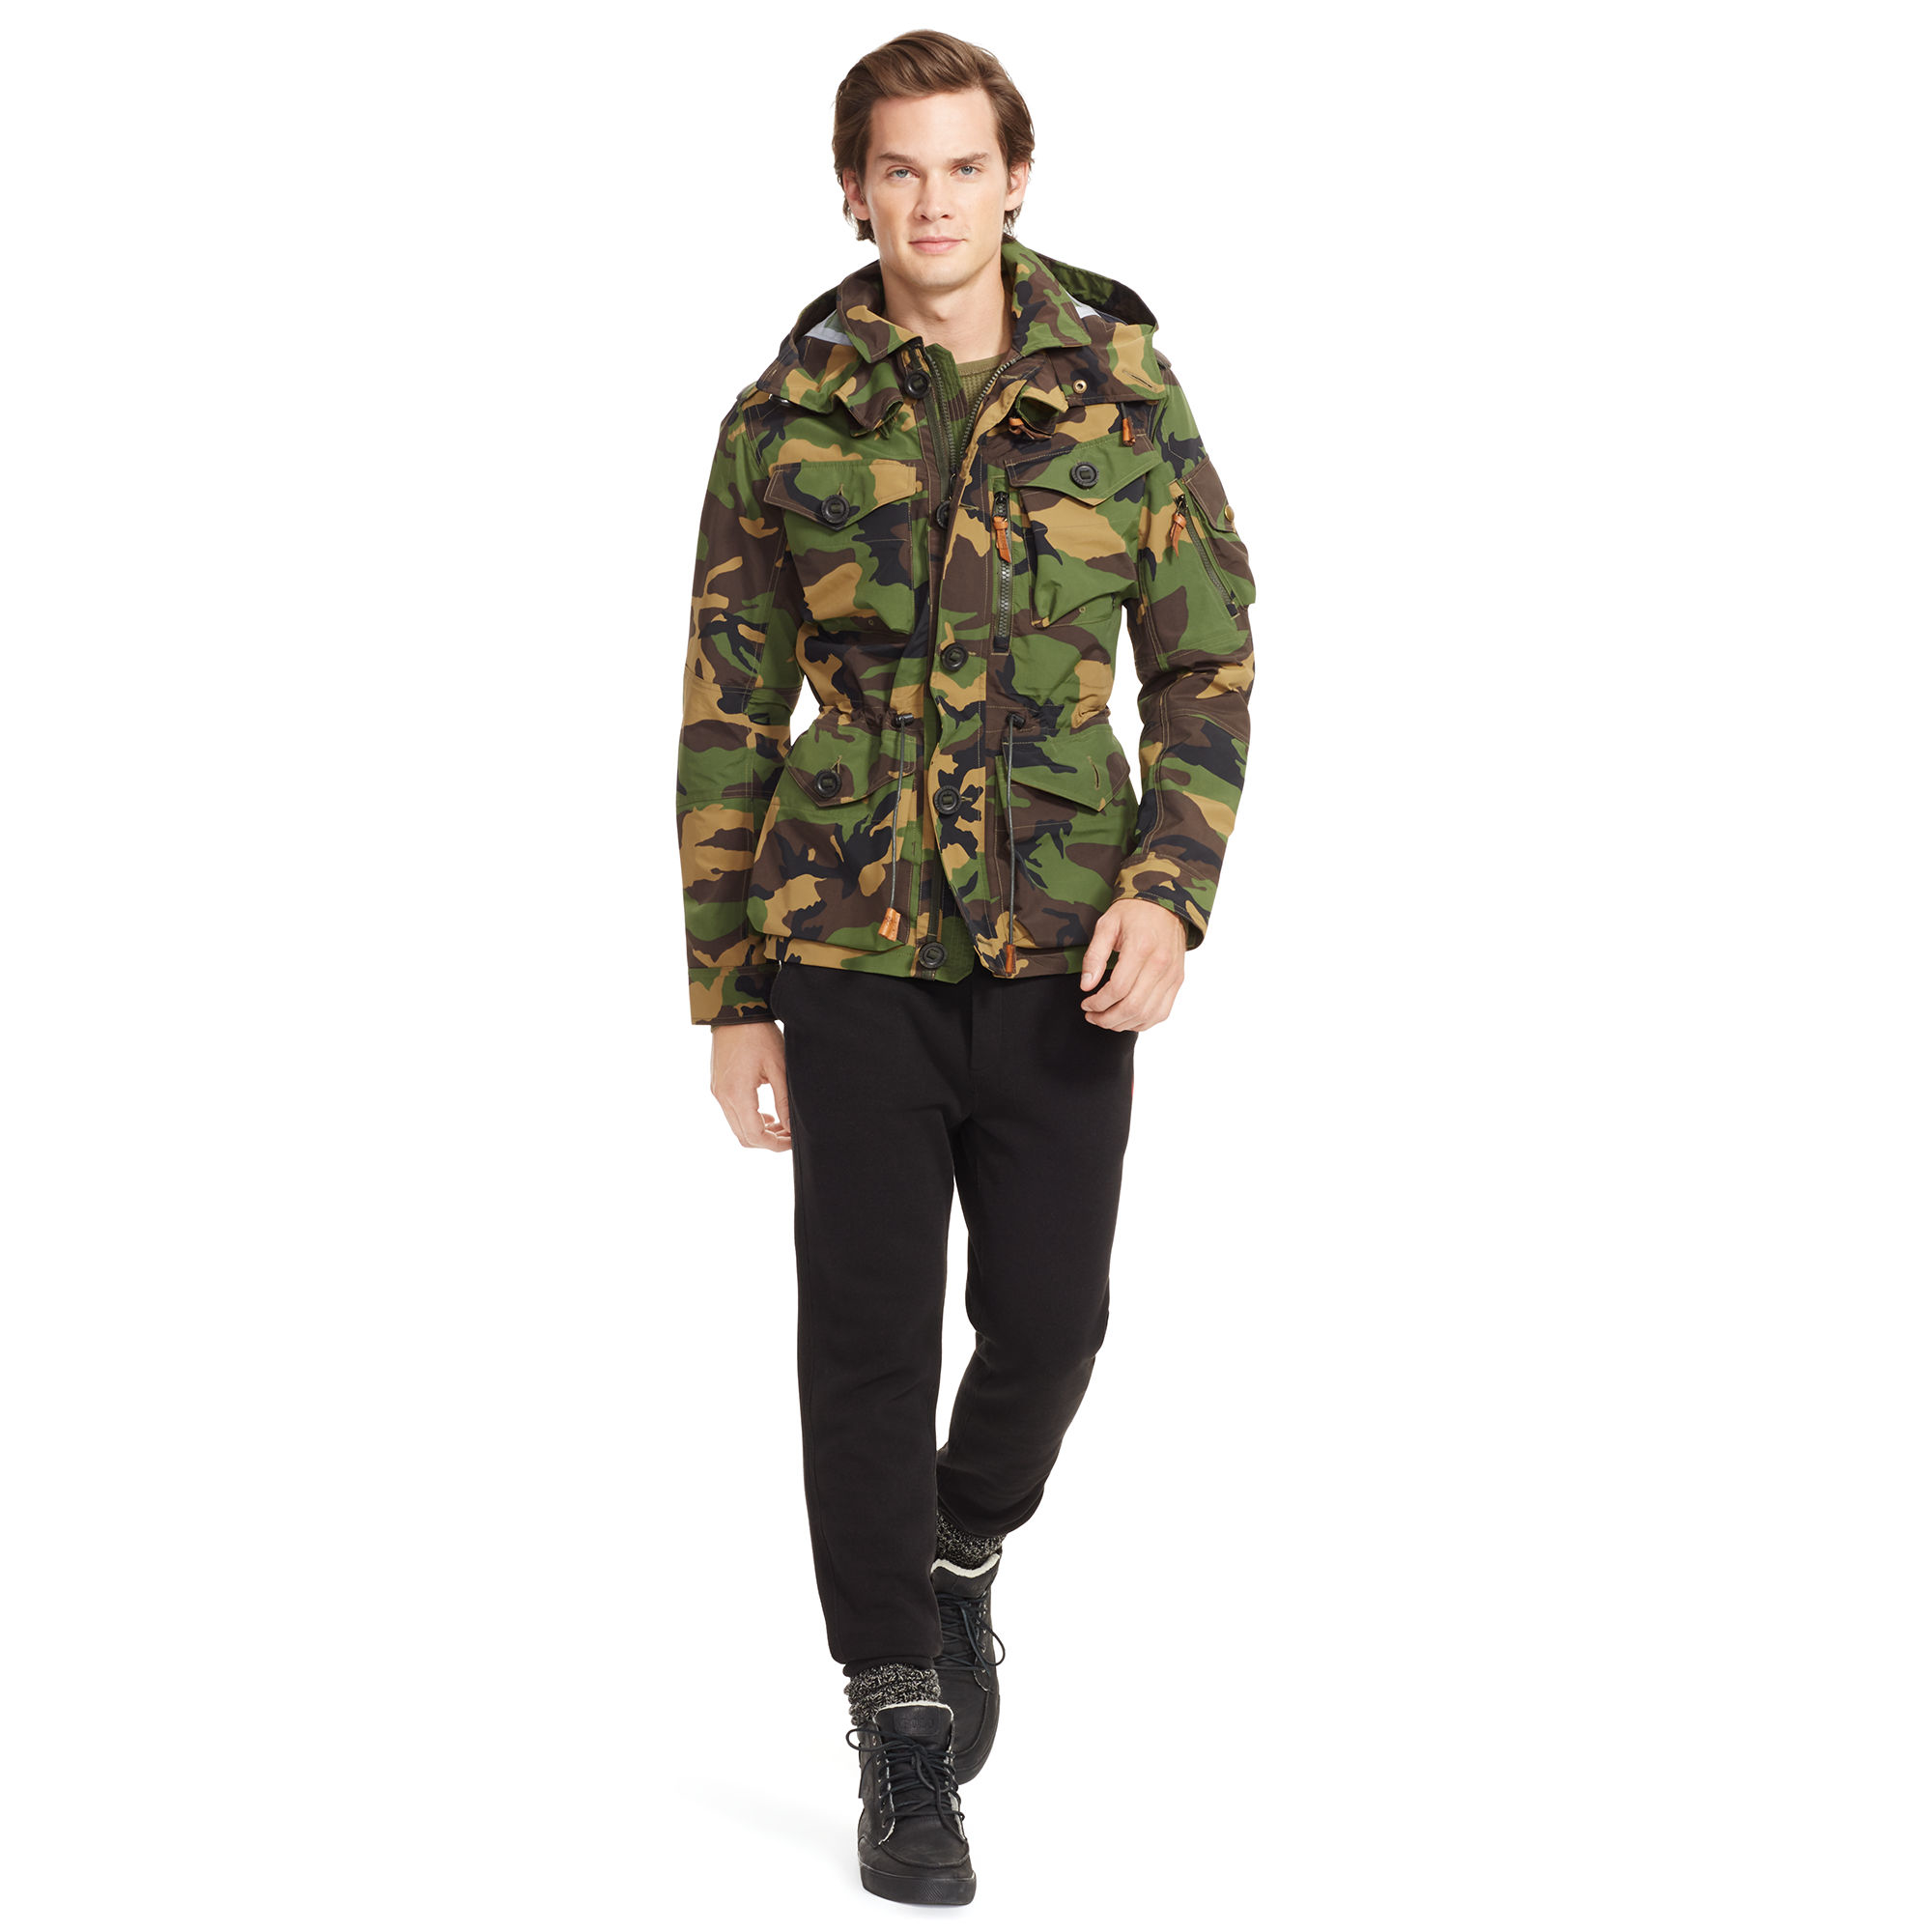 add05664277b Lyst - Polo ralph lauren Camouflage Anorak in Green for Men